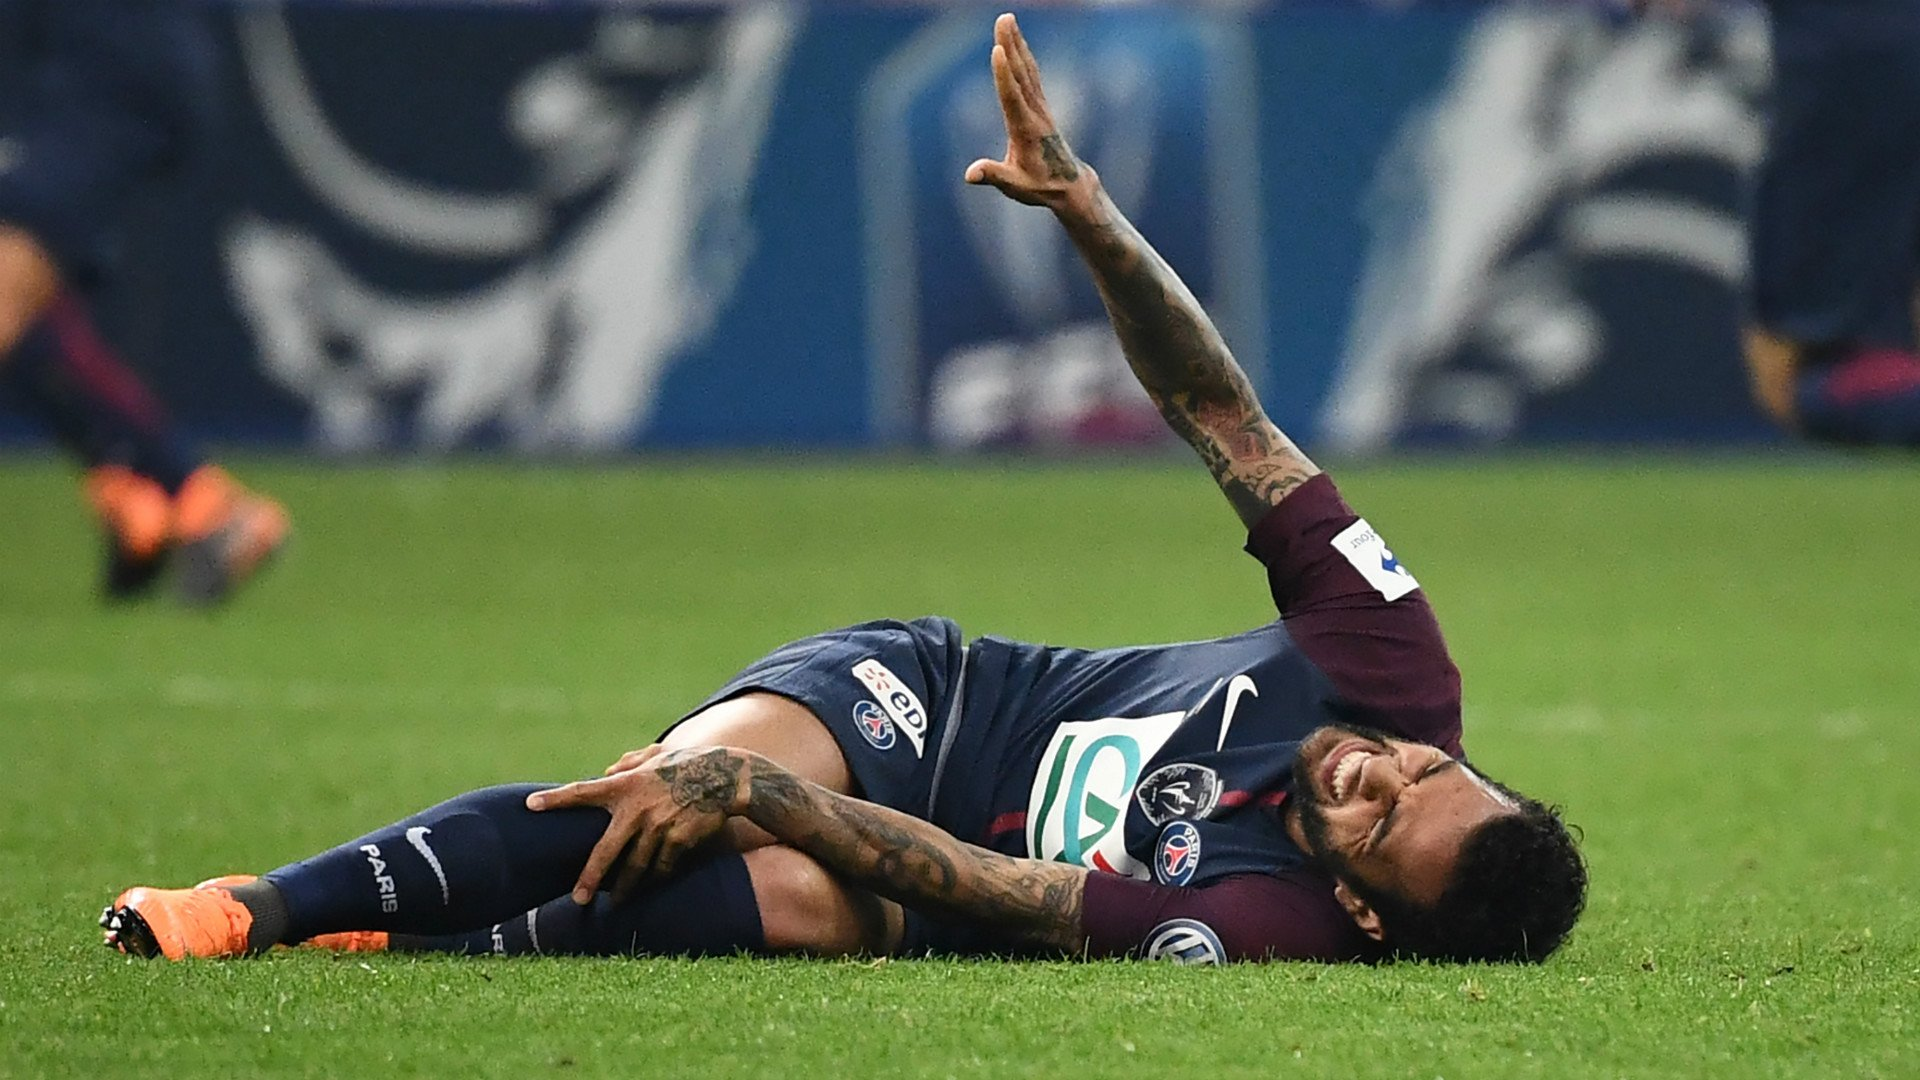 Brazil Dealt World Cup Blow As Injured Alves Is Ruled Out